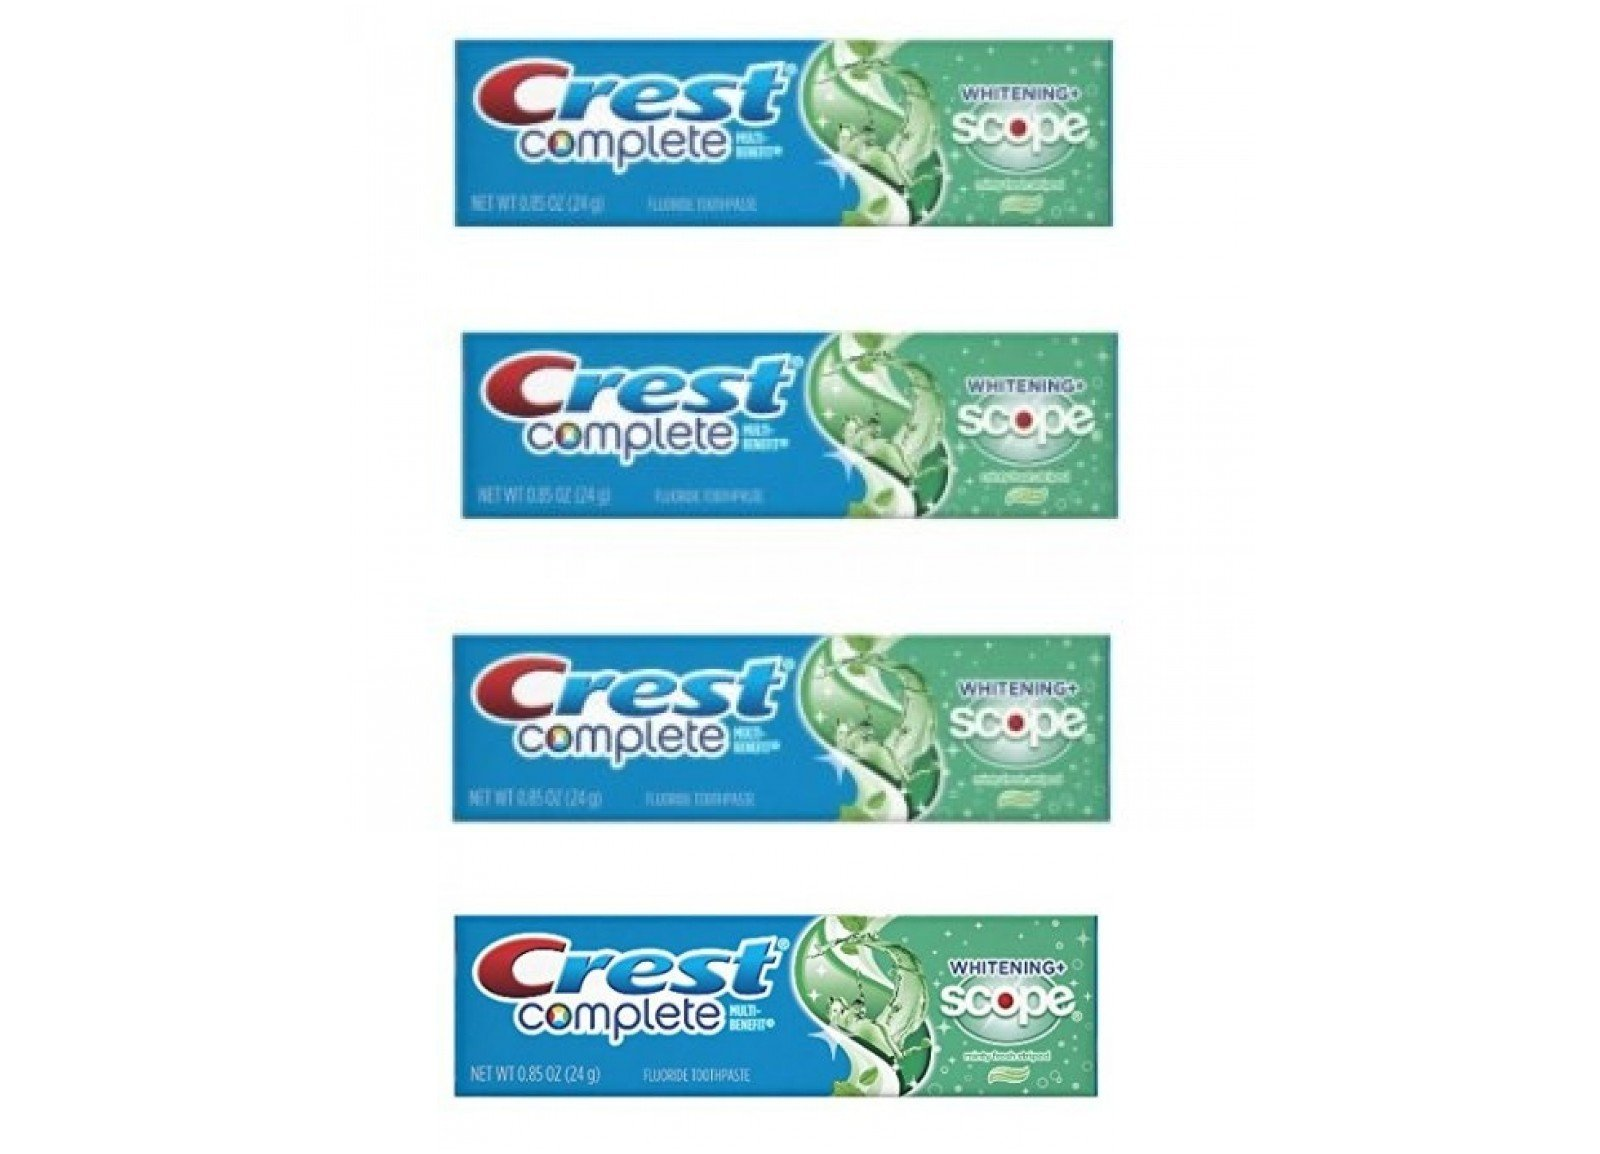 Crest Complete Whitening Scope Minty Toothpaste .85 Oz Travel Size 4 Pack